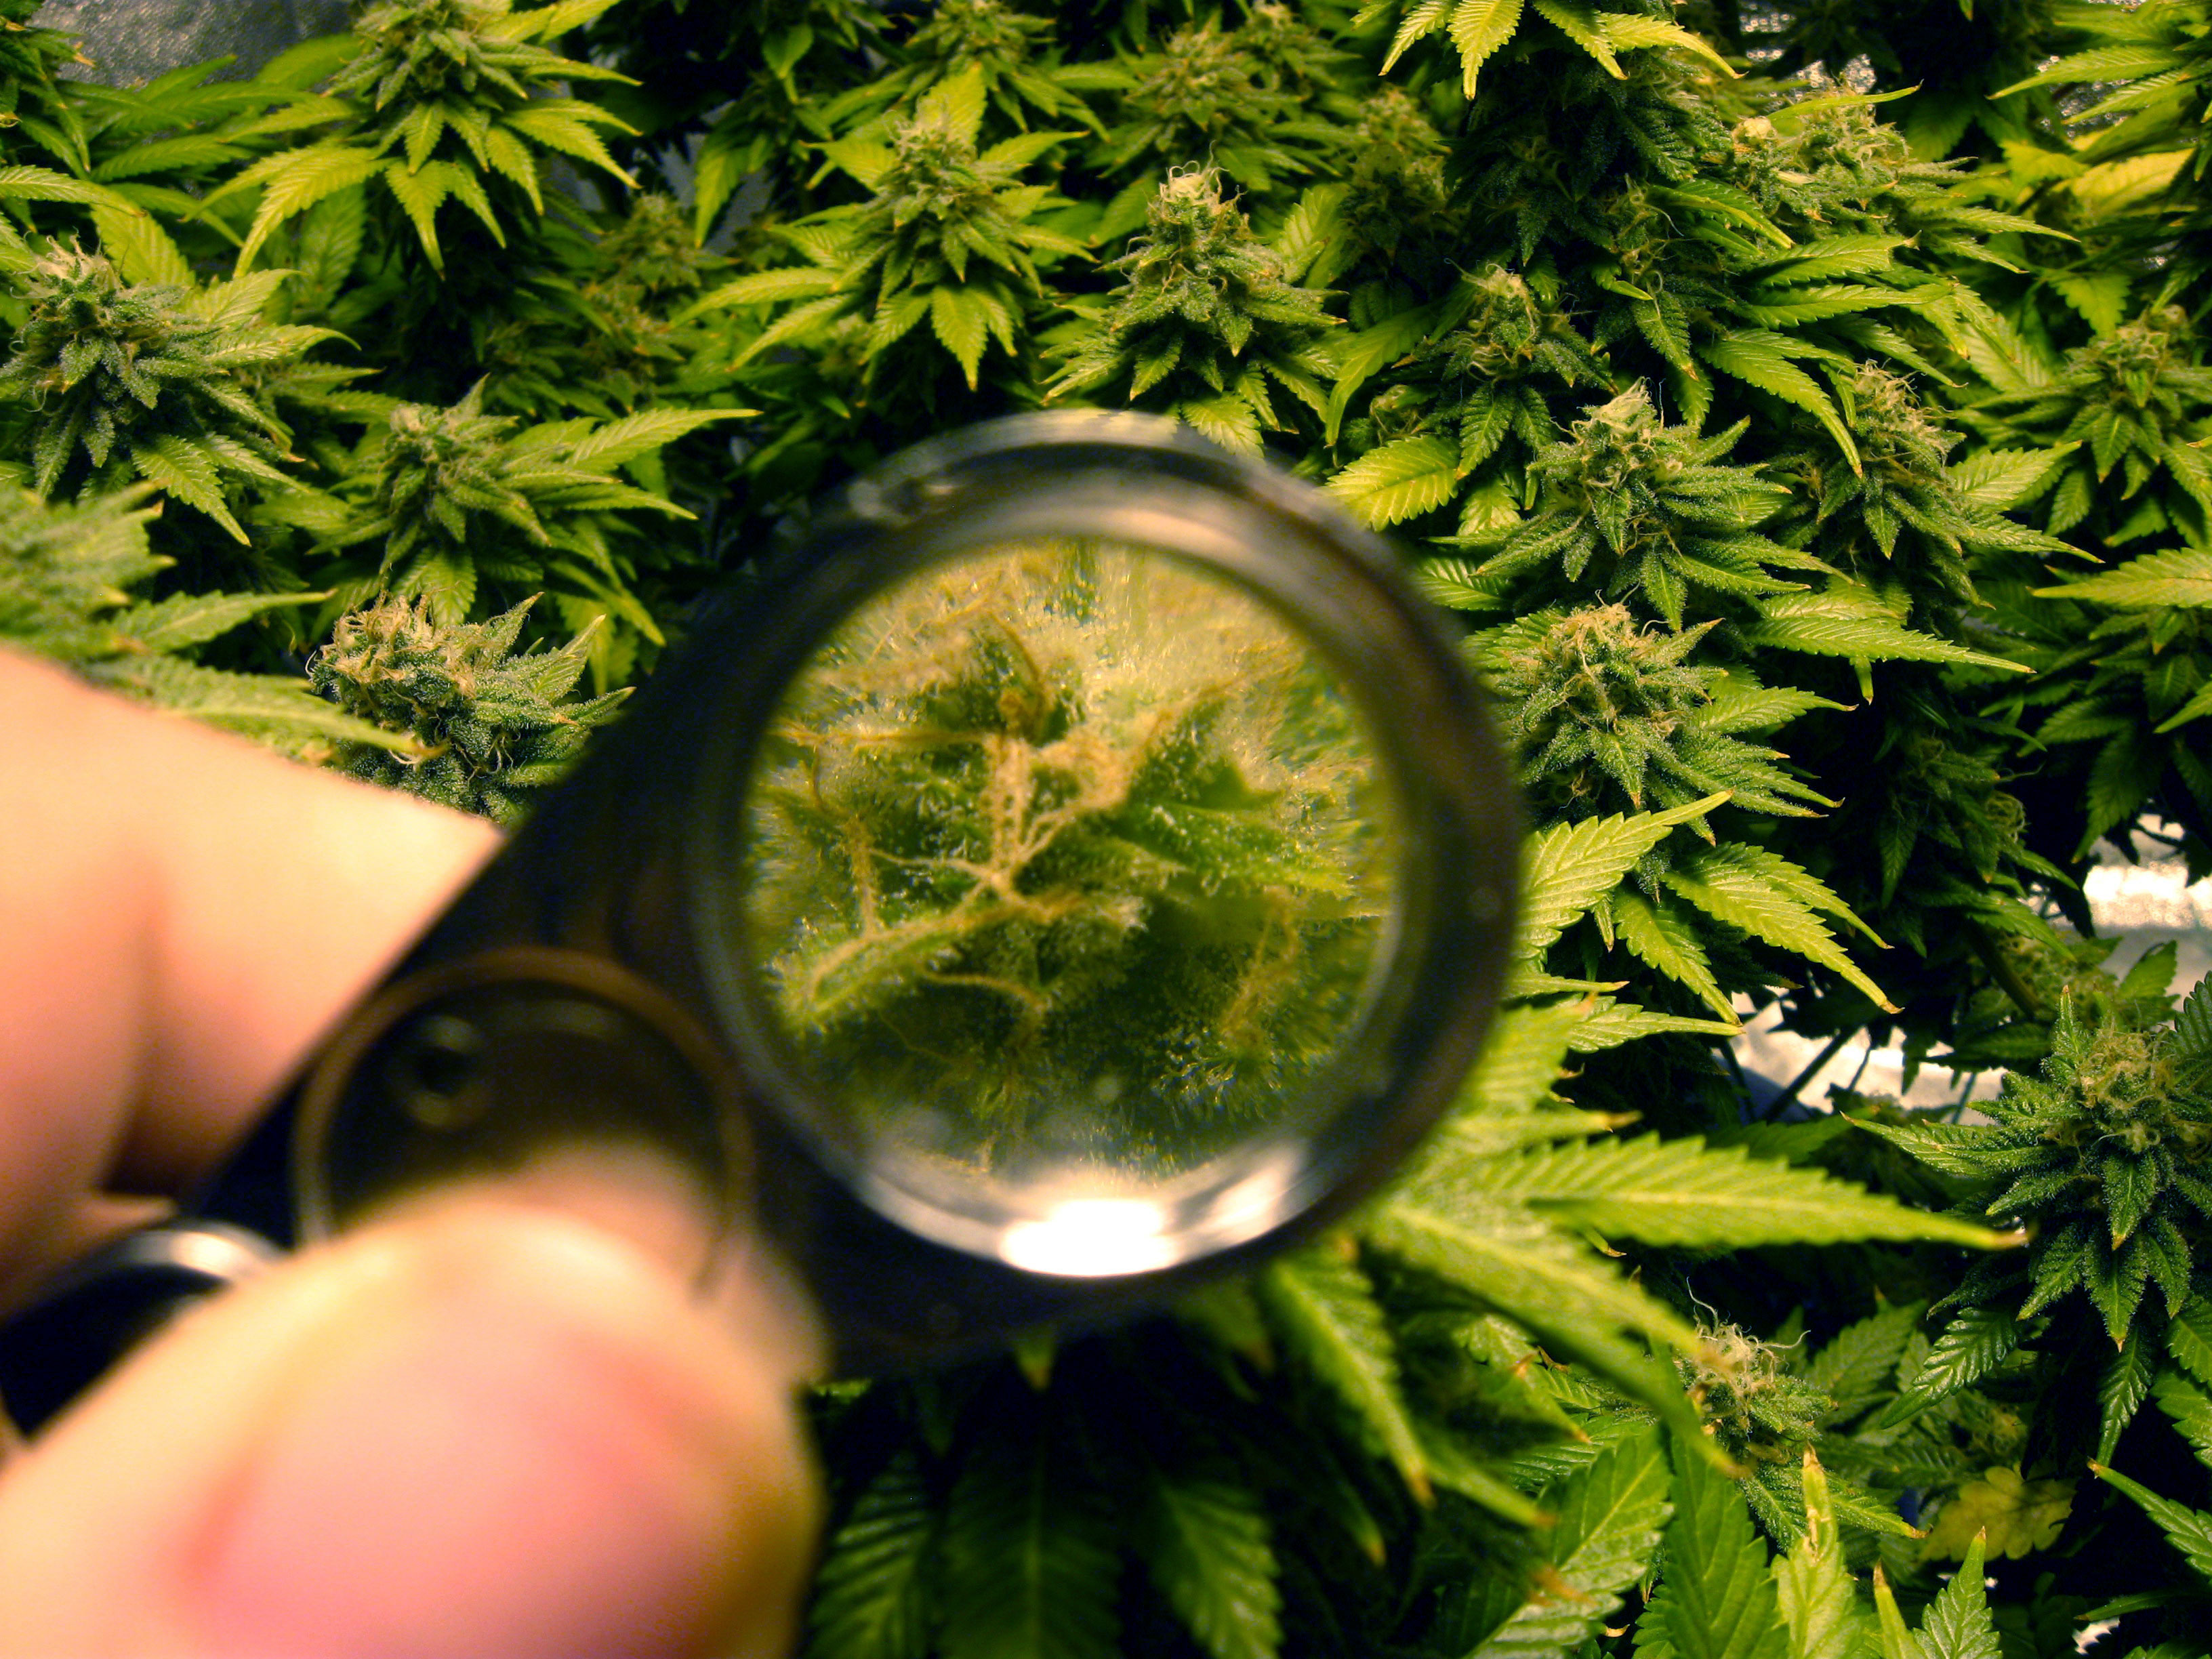 When to harvest weed a view of marijuana trichomes through a jewlers loupe nvjuhfo Image collections